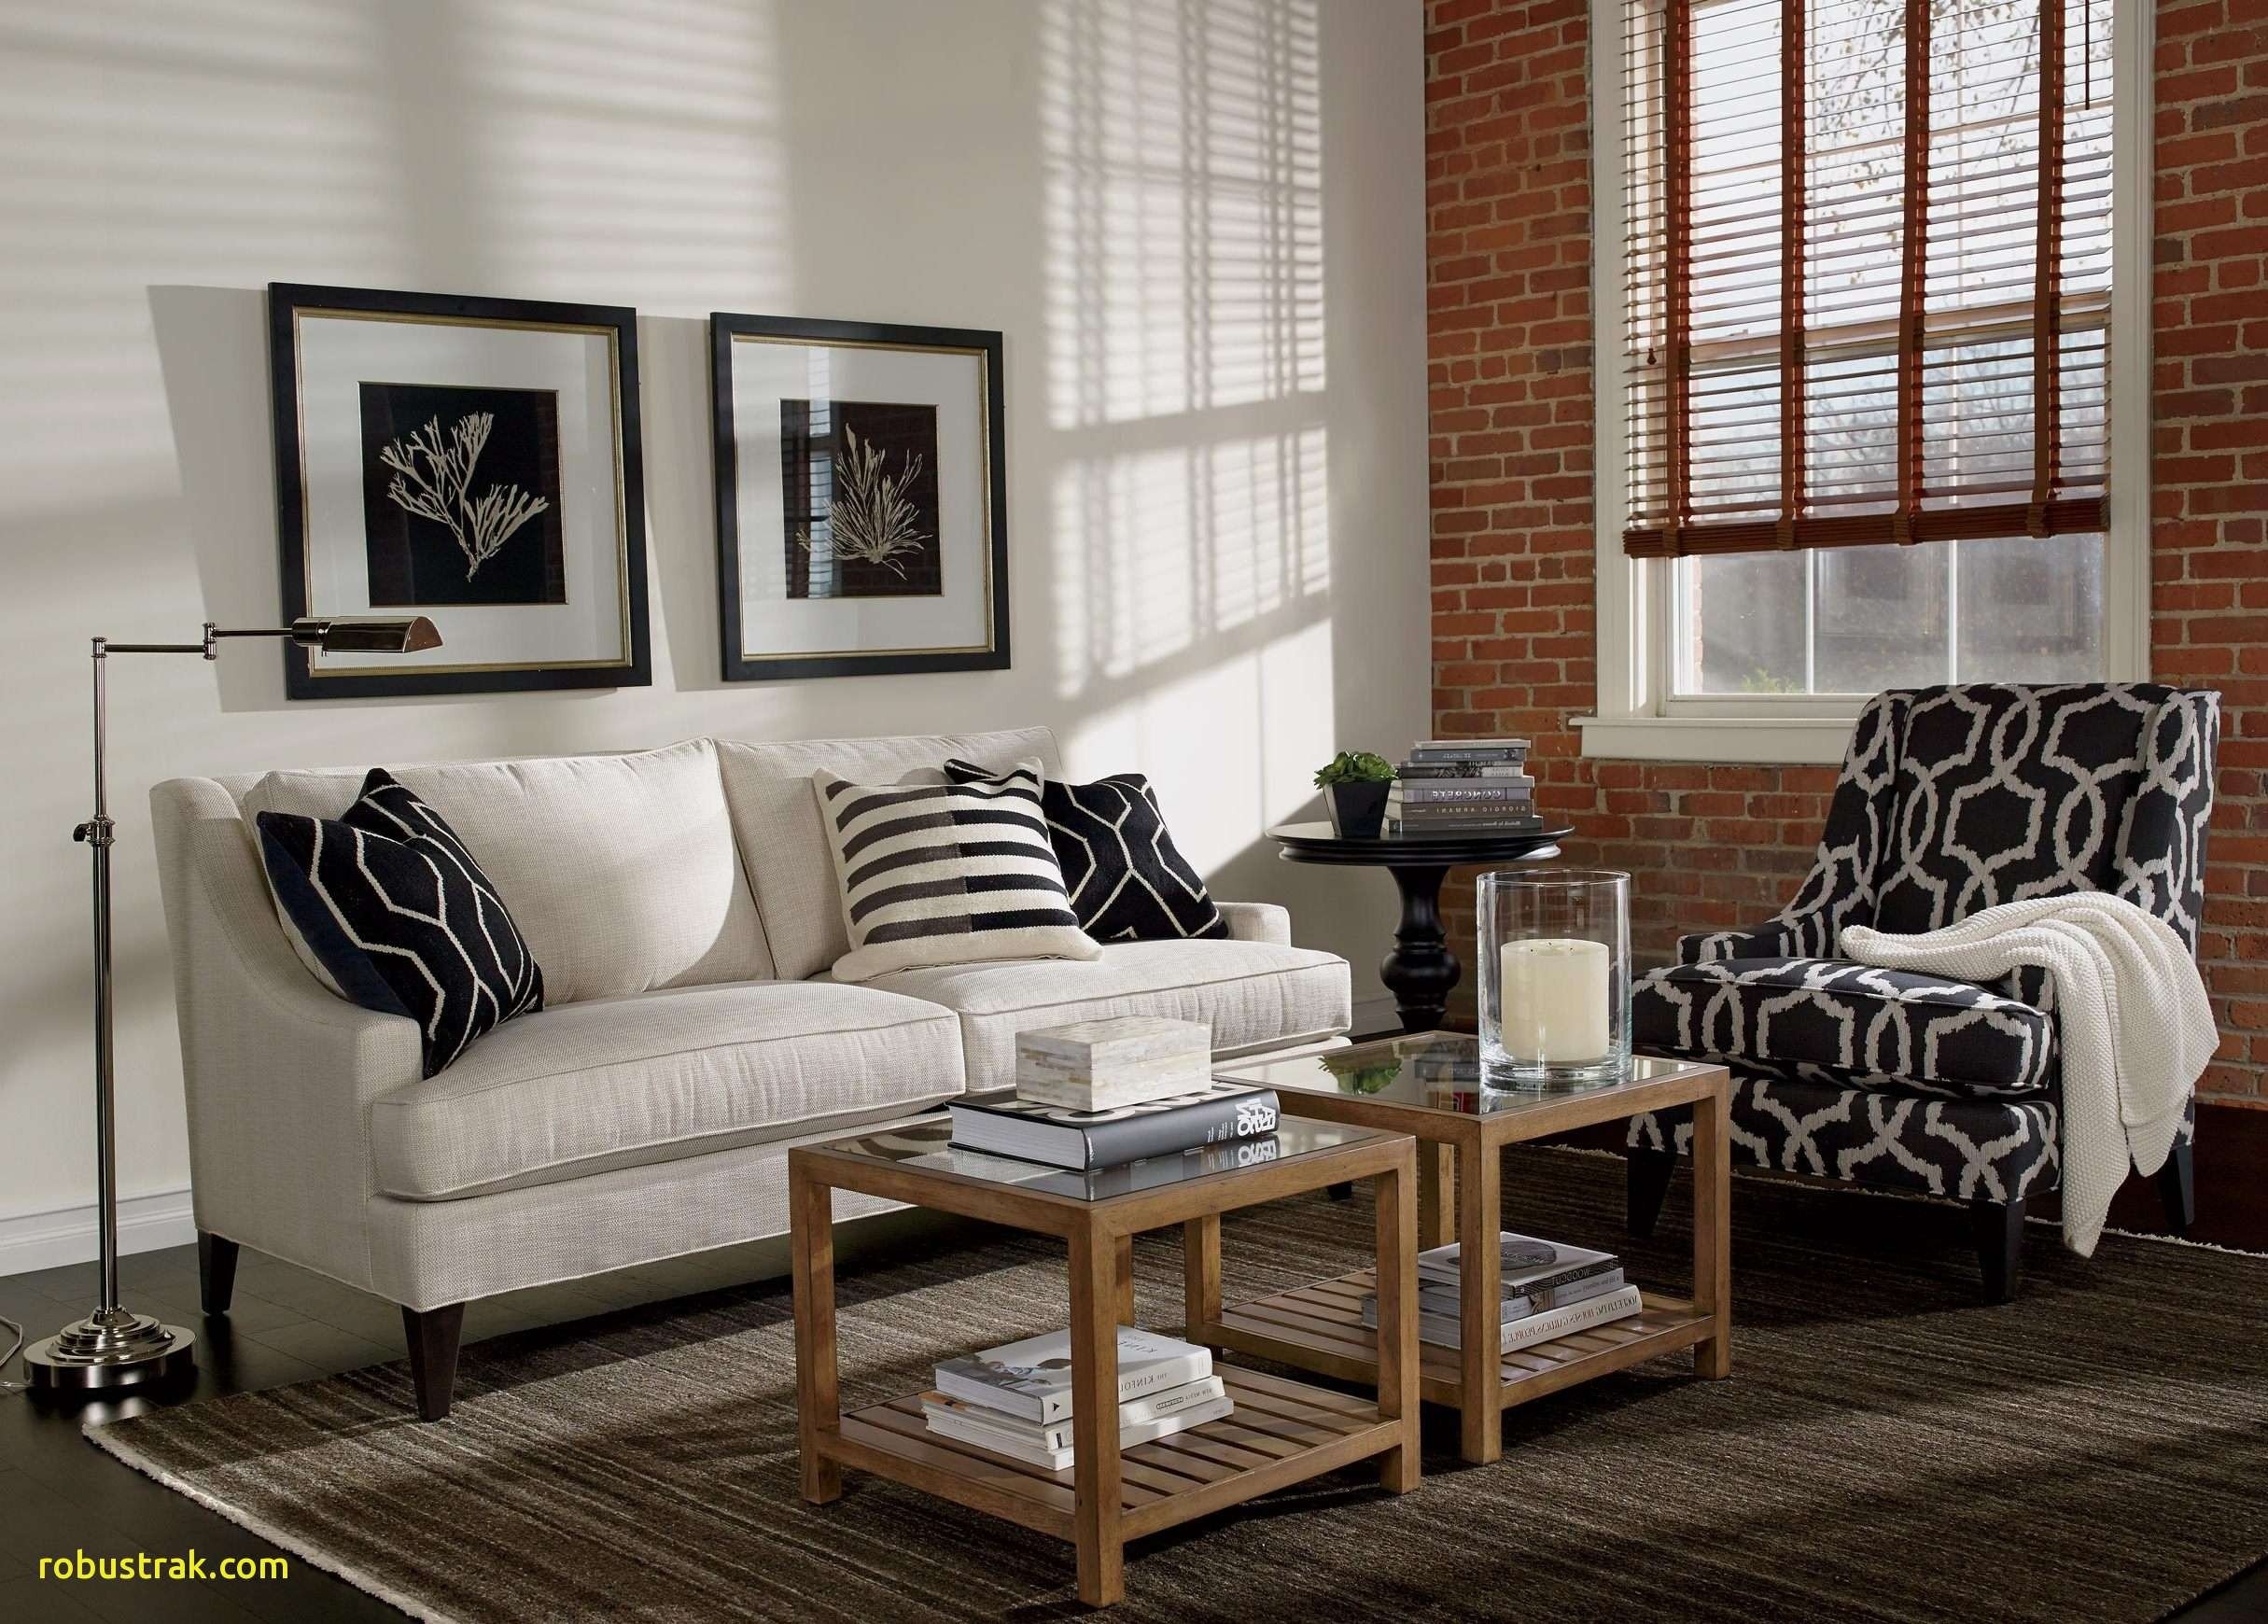 Most Comfortable Living Roomfurniture Most fortable Living Room Chair Most fortable Living